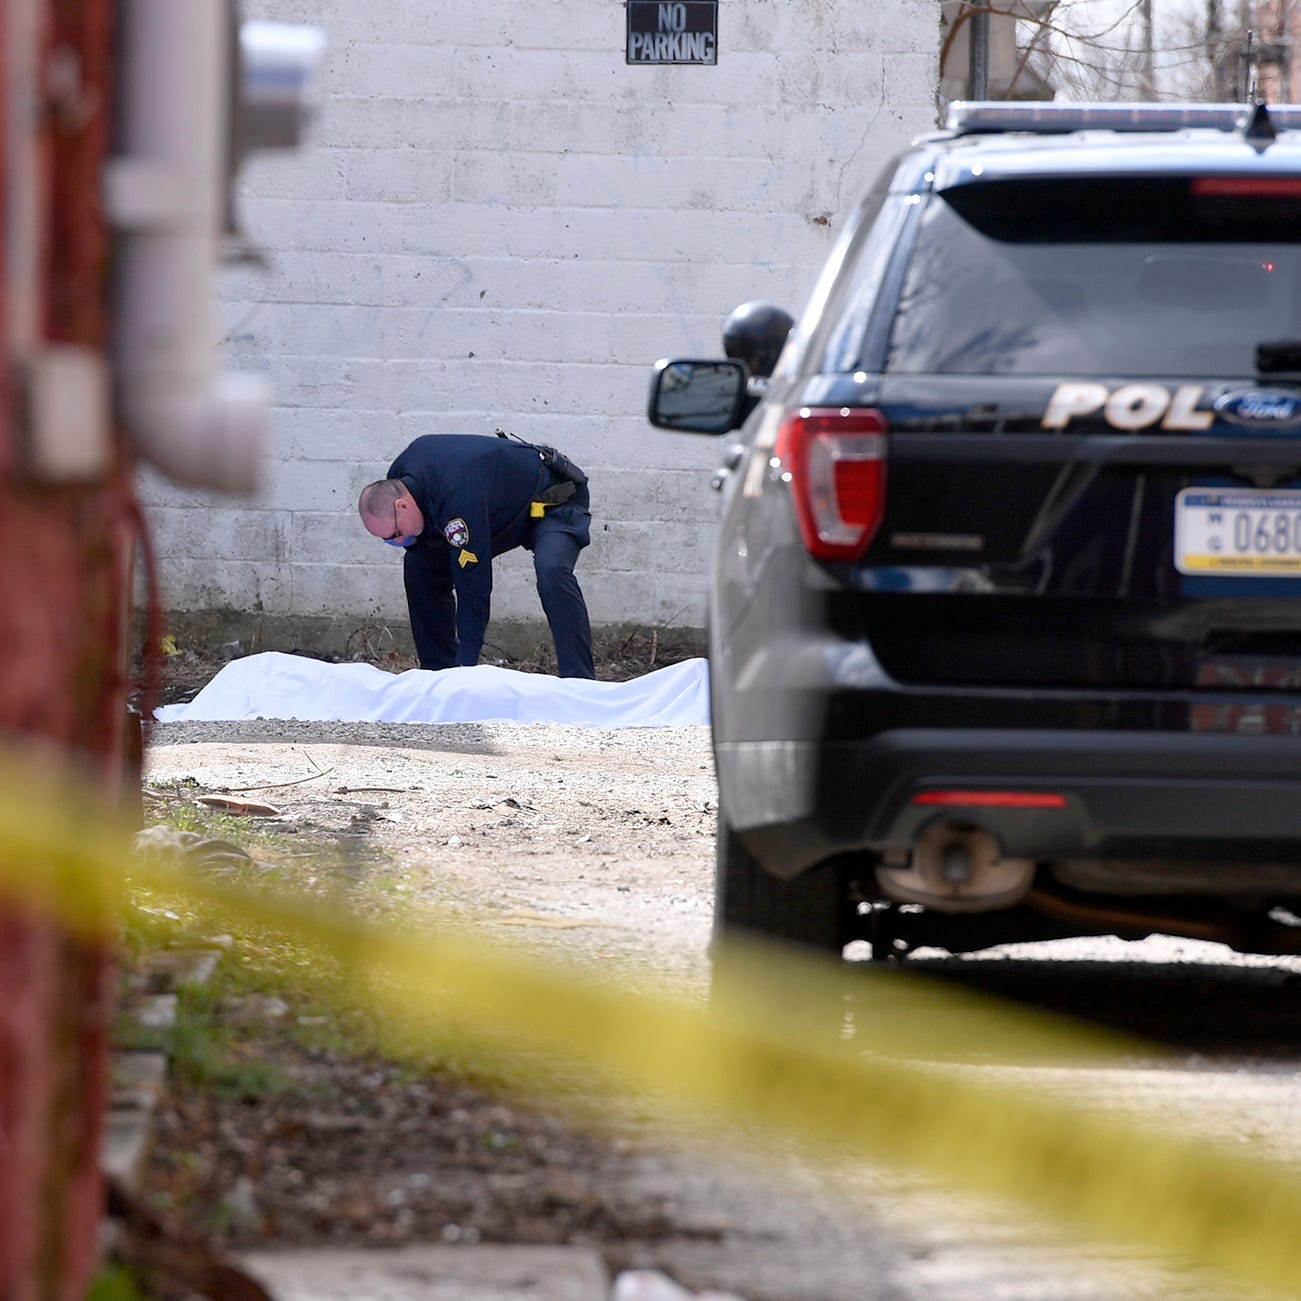 Coroner ID's victim in Sunday's York City homicide